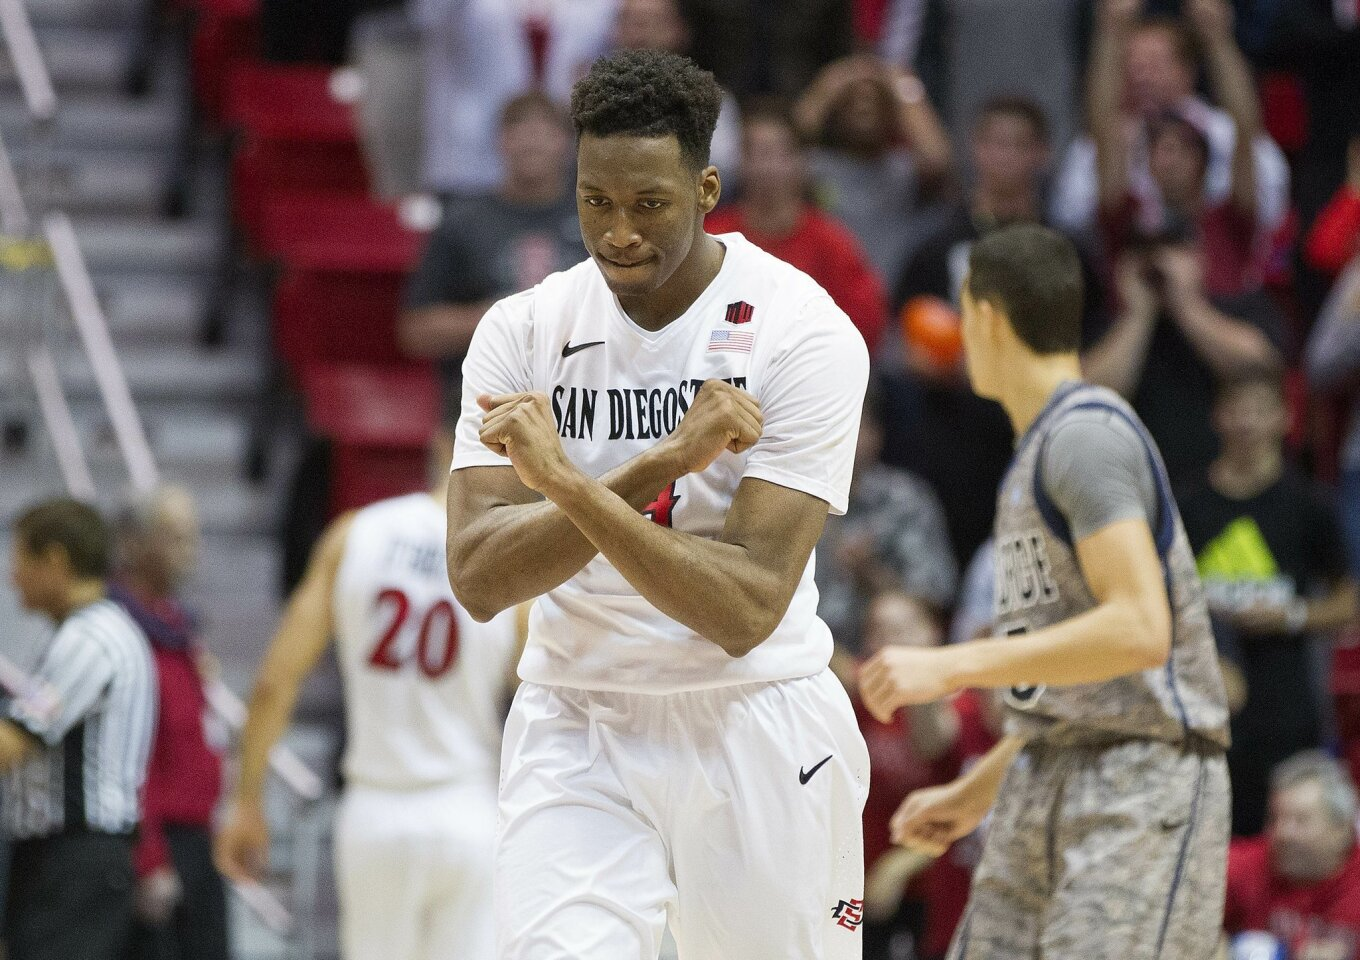 San Diego State guard Dakarai Allen reacts to the 53-49 win over Air Force.